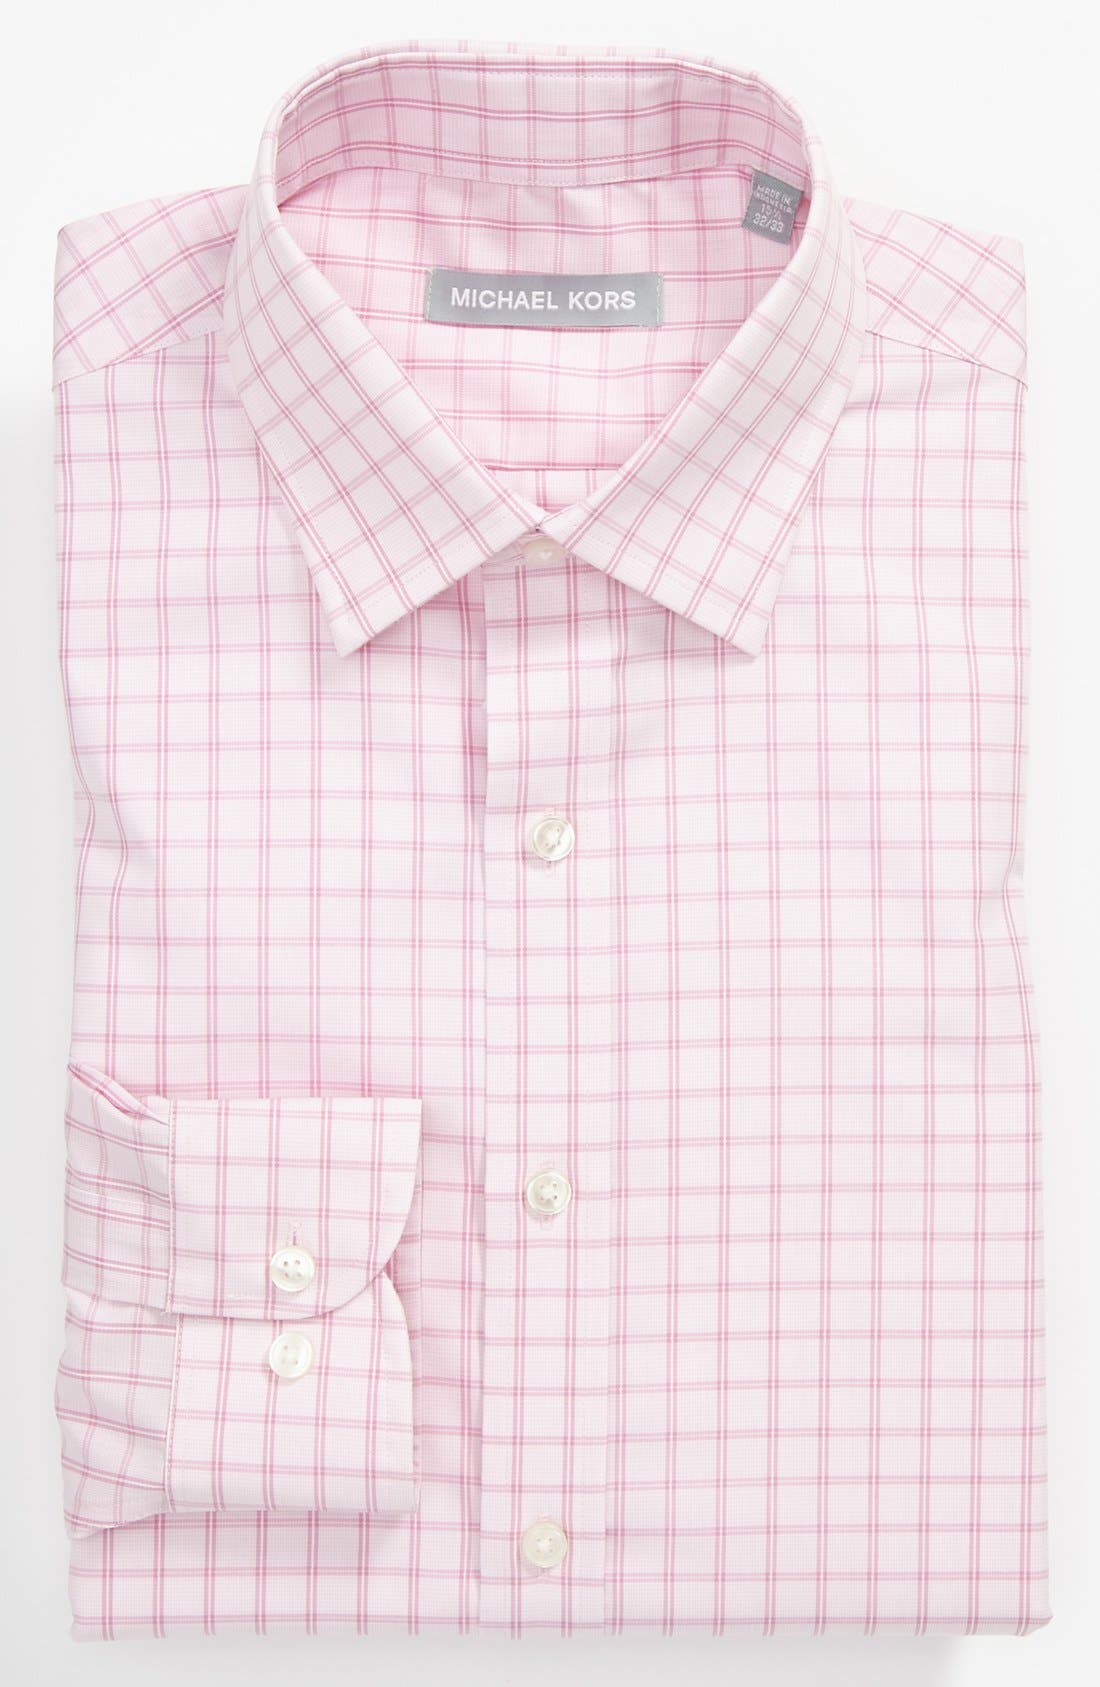 Alternate Image 1 Selected - Michael Kors Regular Fit Non-Iron Dress Shirt